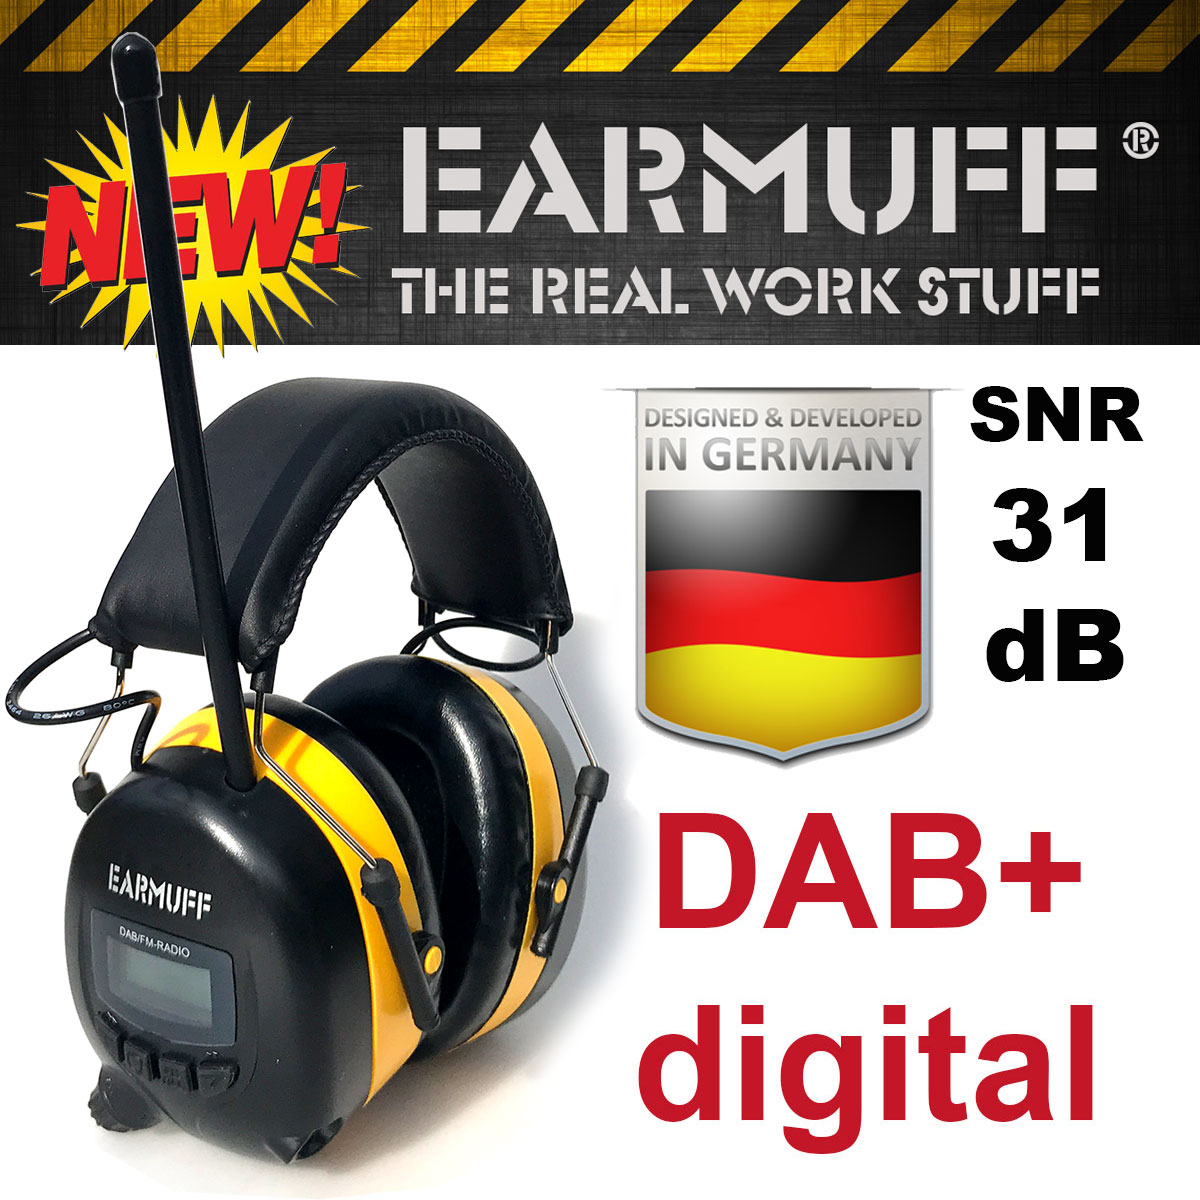 original 31db earmuff geh rschutz dab digital radio mit lithium akku ebay. Black Bedroom Furniture Sets. Home Design Ideas